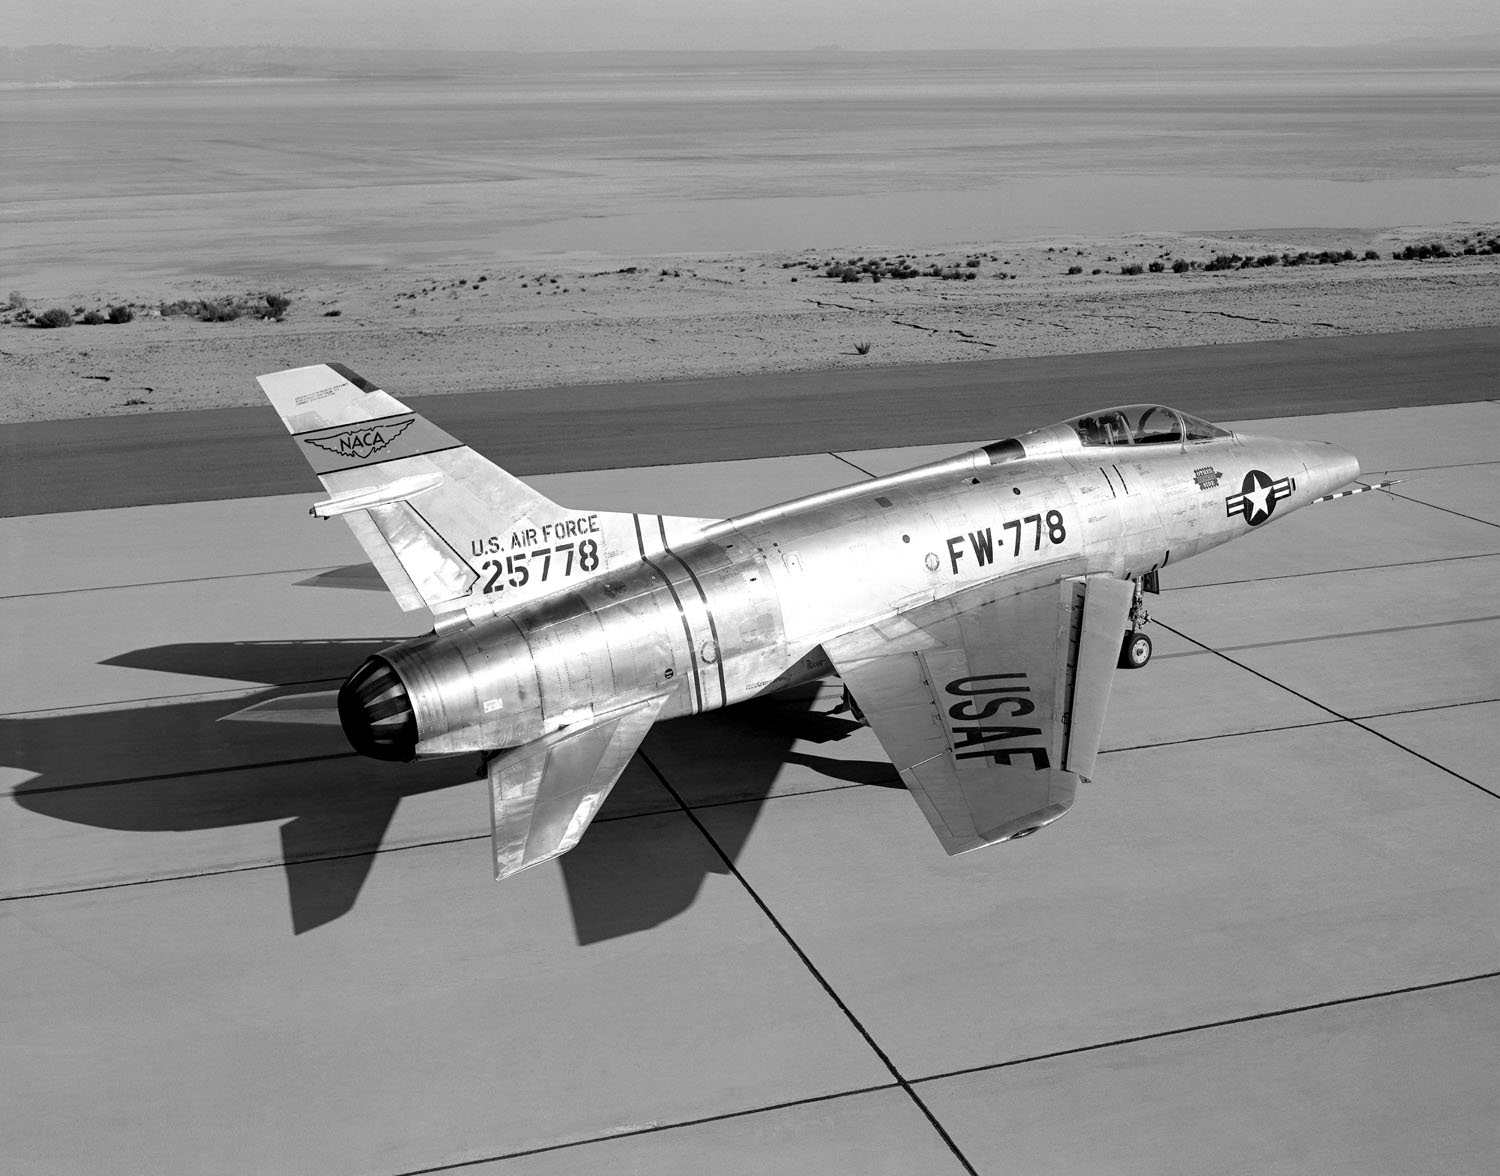 The first of two YF-100A aircraft on its first flight. (Photograph courtesy of the National Museum of tahe United States Air Force)